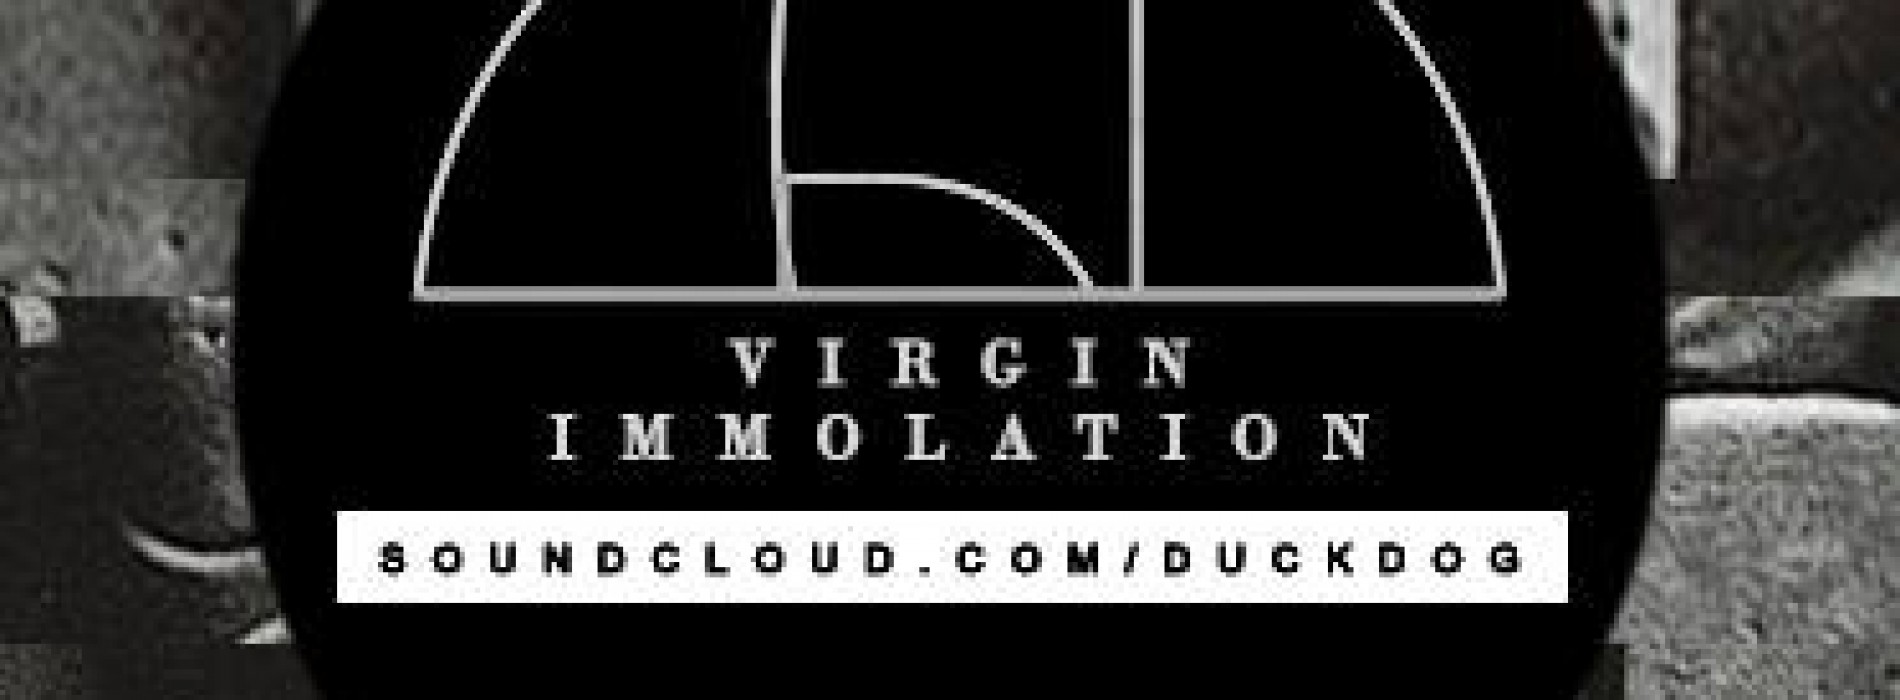 Nuu Mujika Alerta: Virgin Immolation By DuckDog